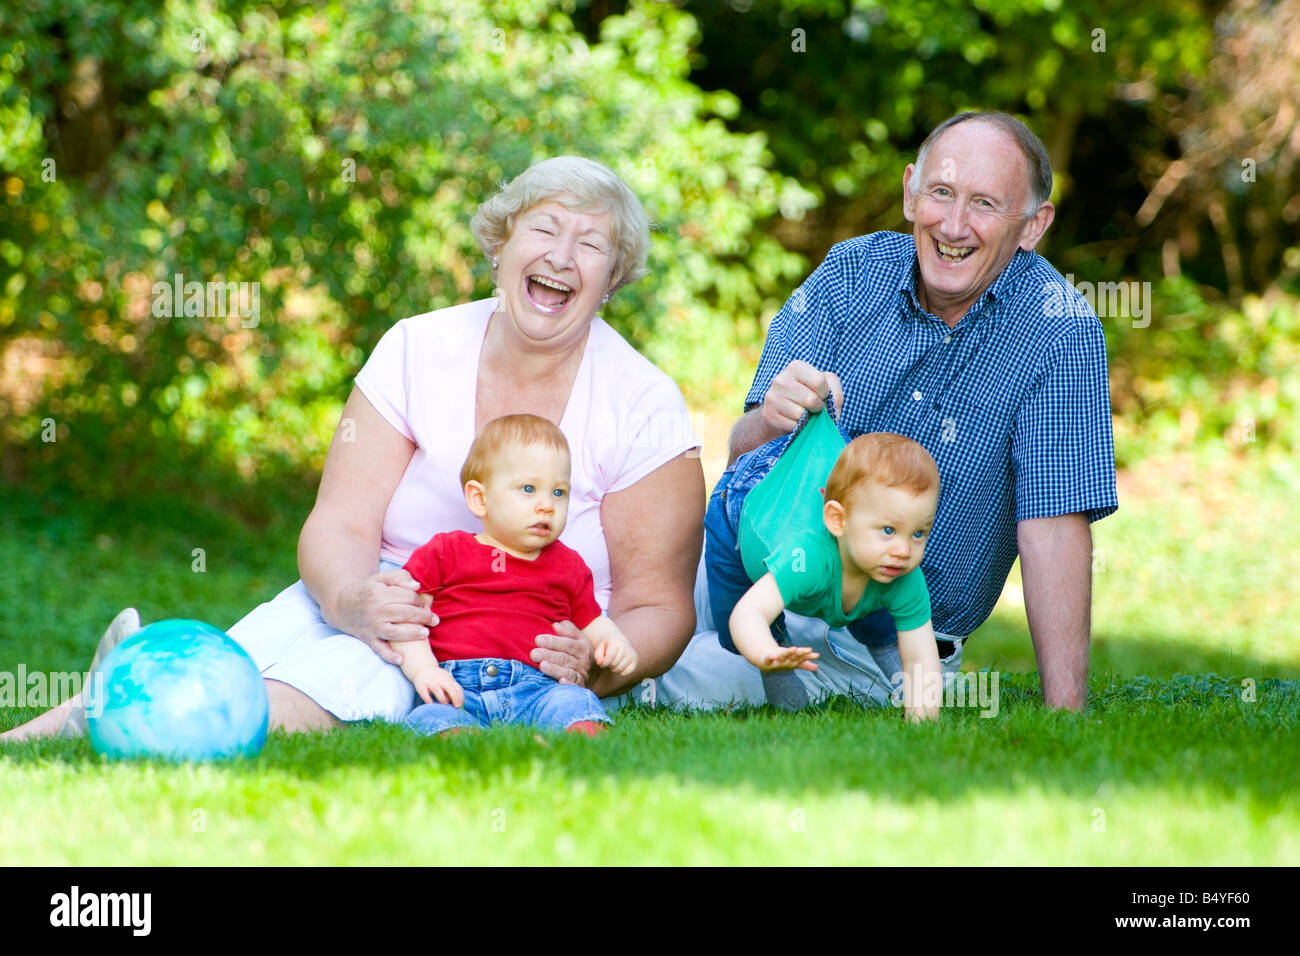 Playing with redheaded twin grandsons with focus on laughing grandparents - Stock Image